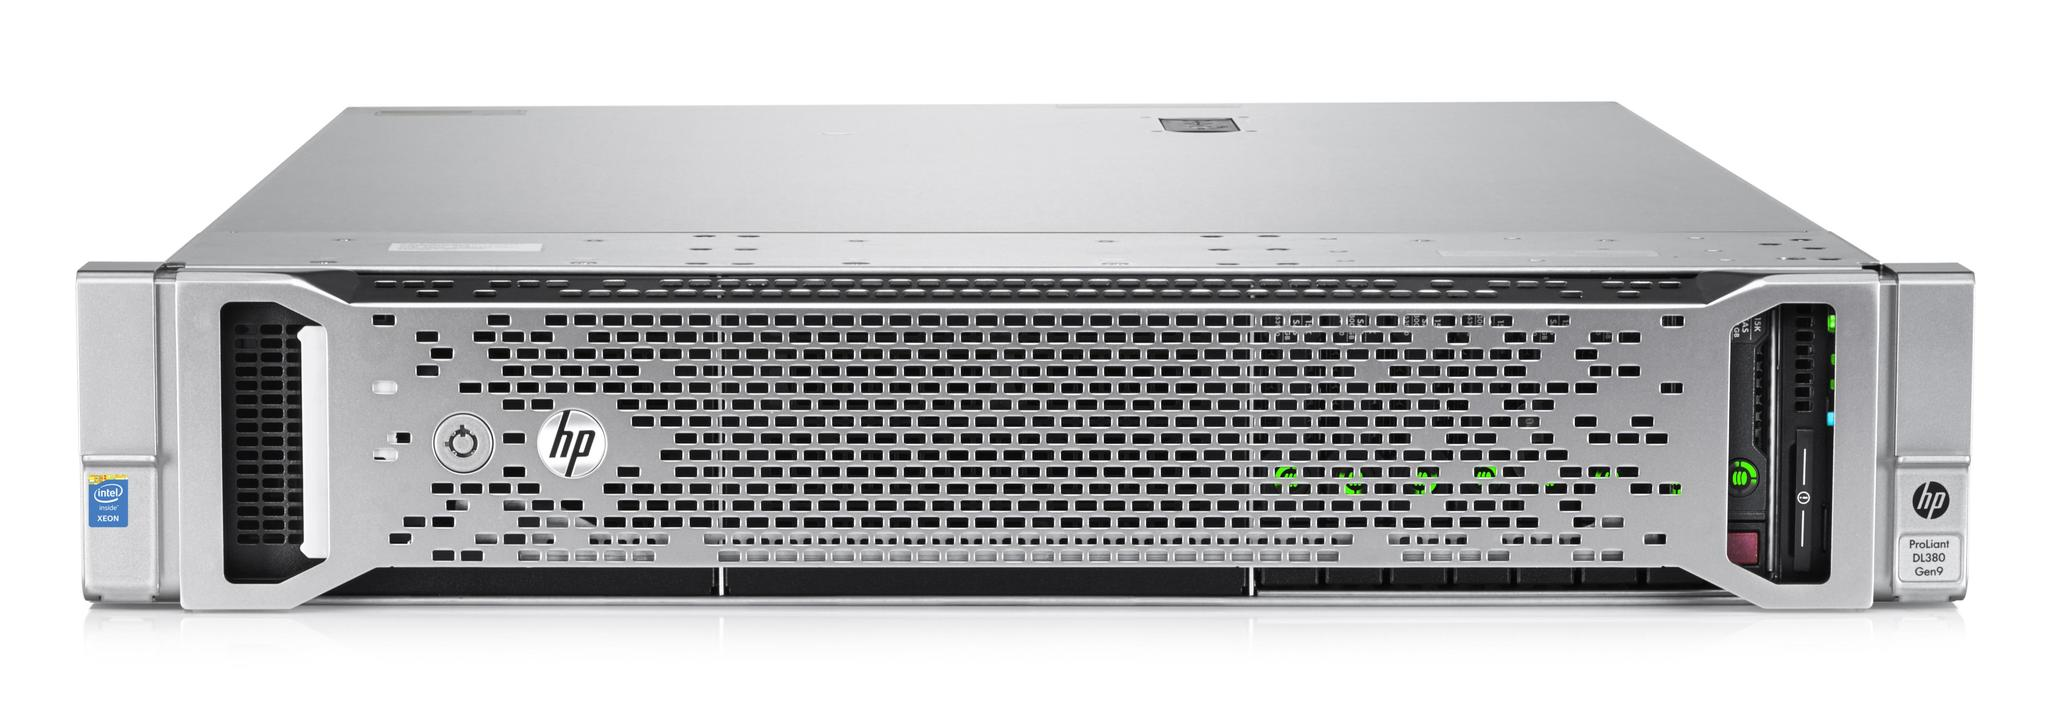 HP Proliant DL380 Gen9 Rack M3G77A